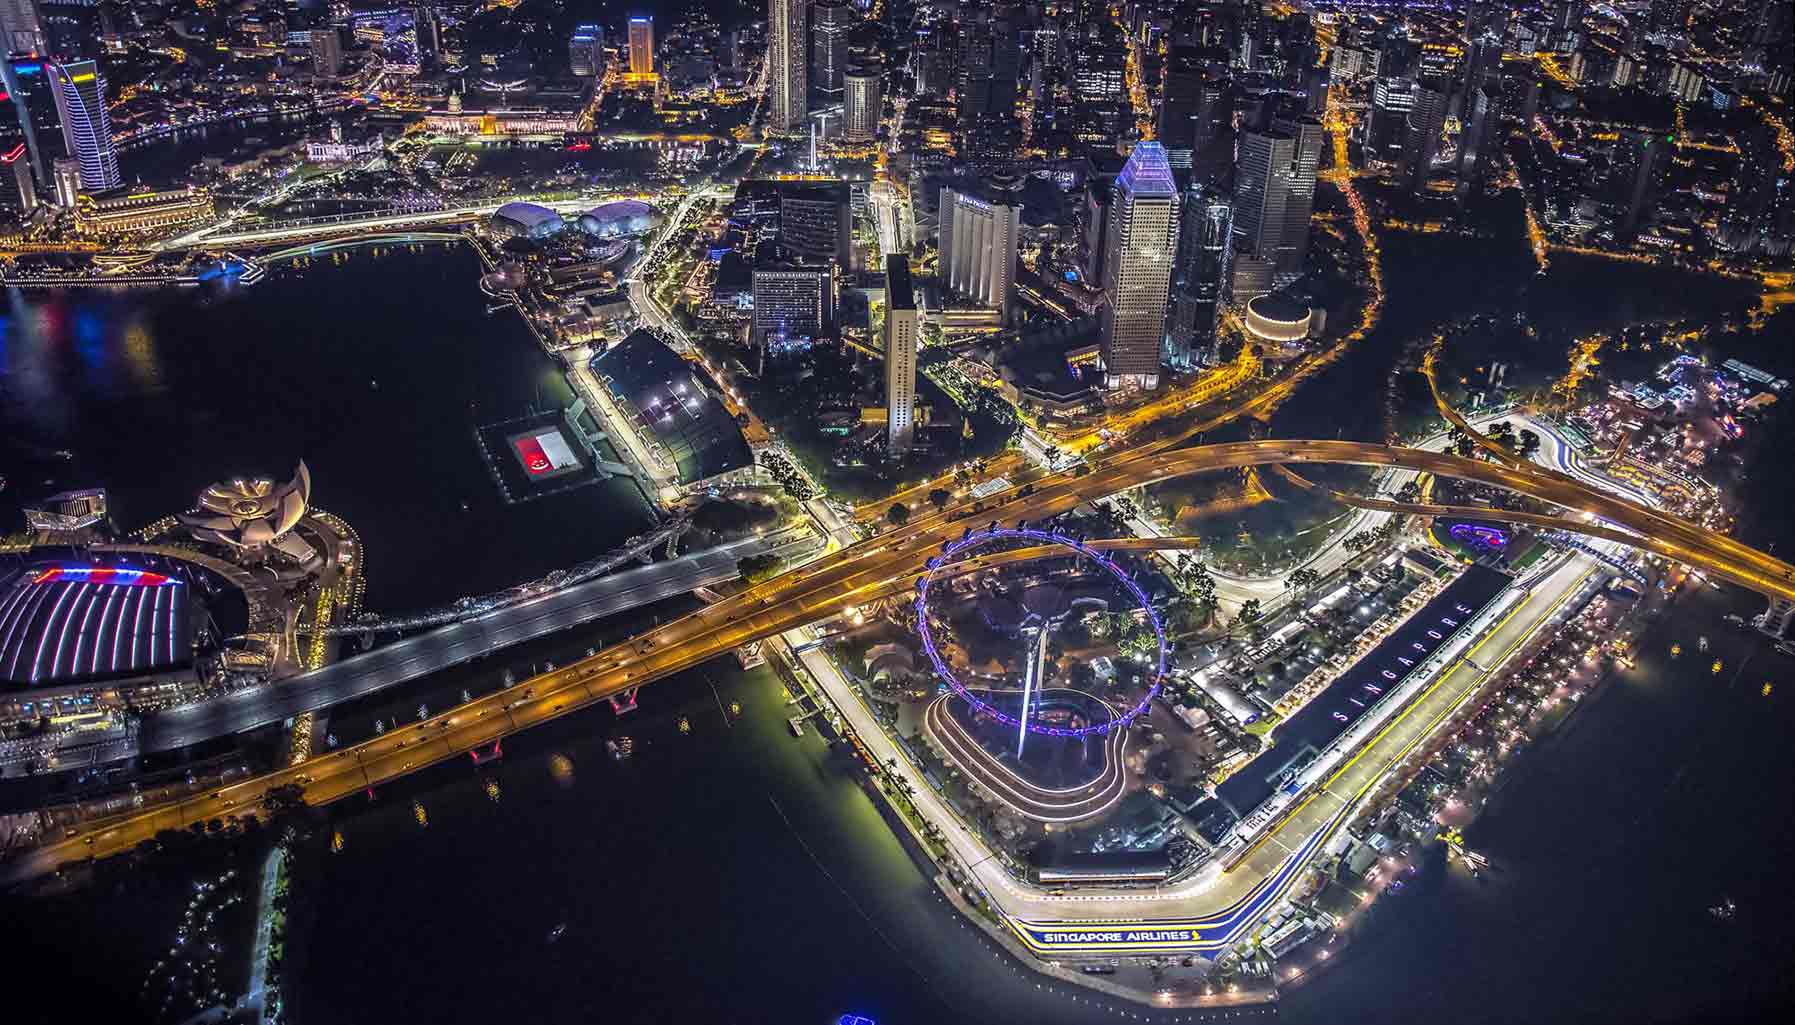 F1 in Singapore, The Ritz-Carlton